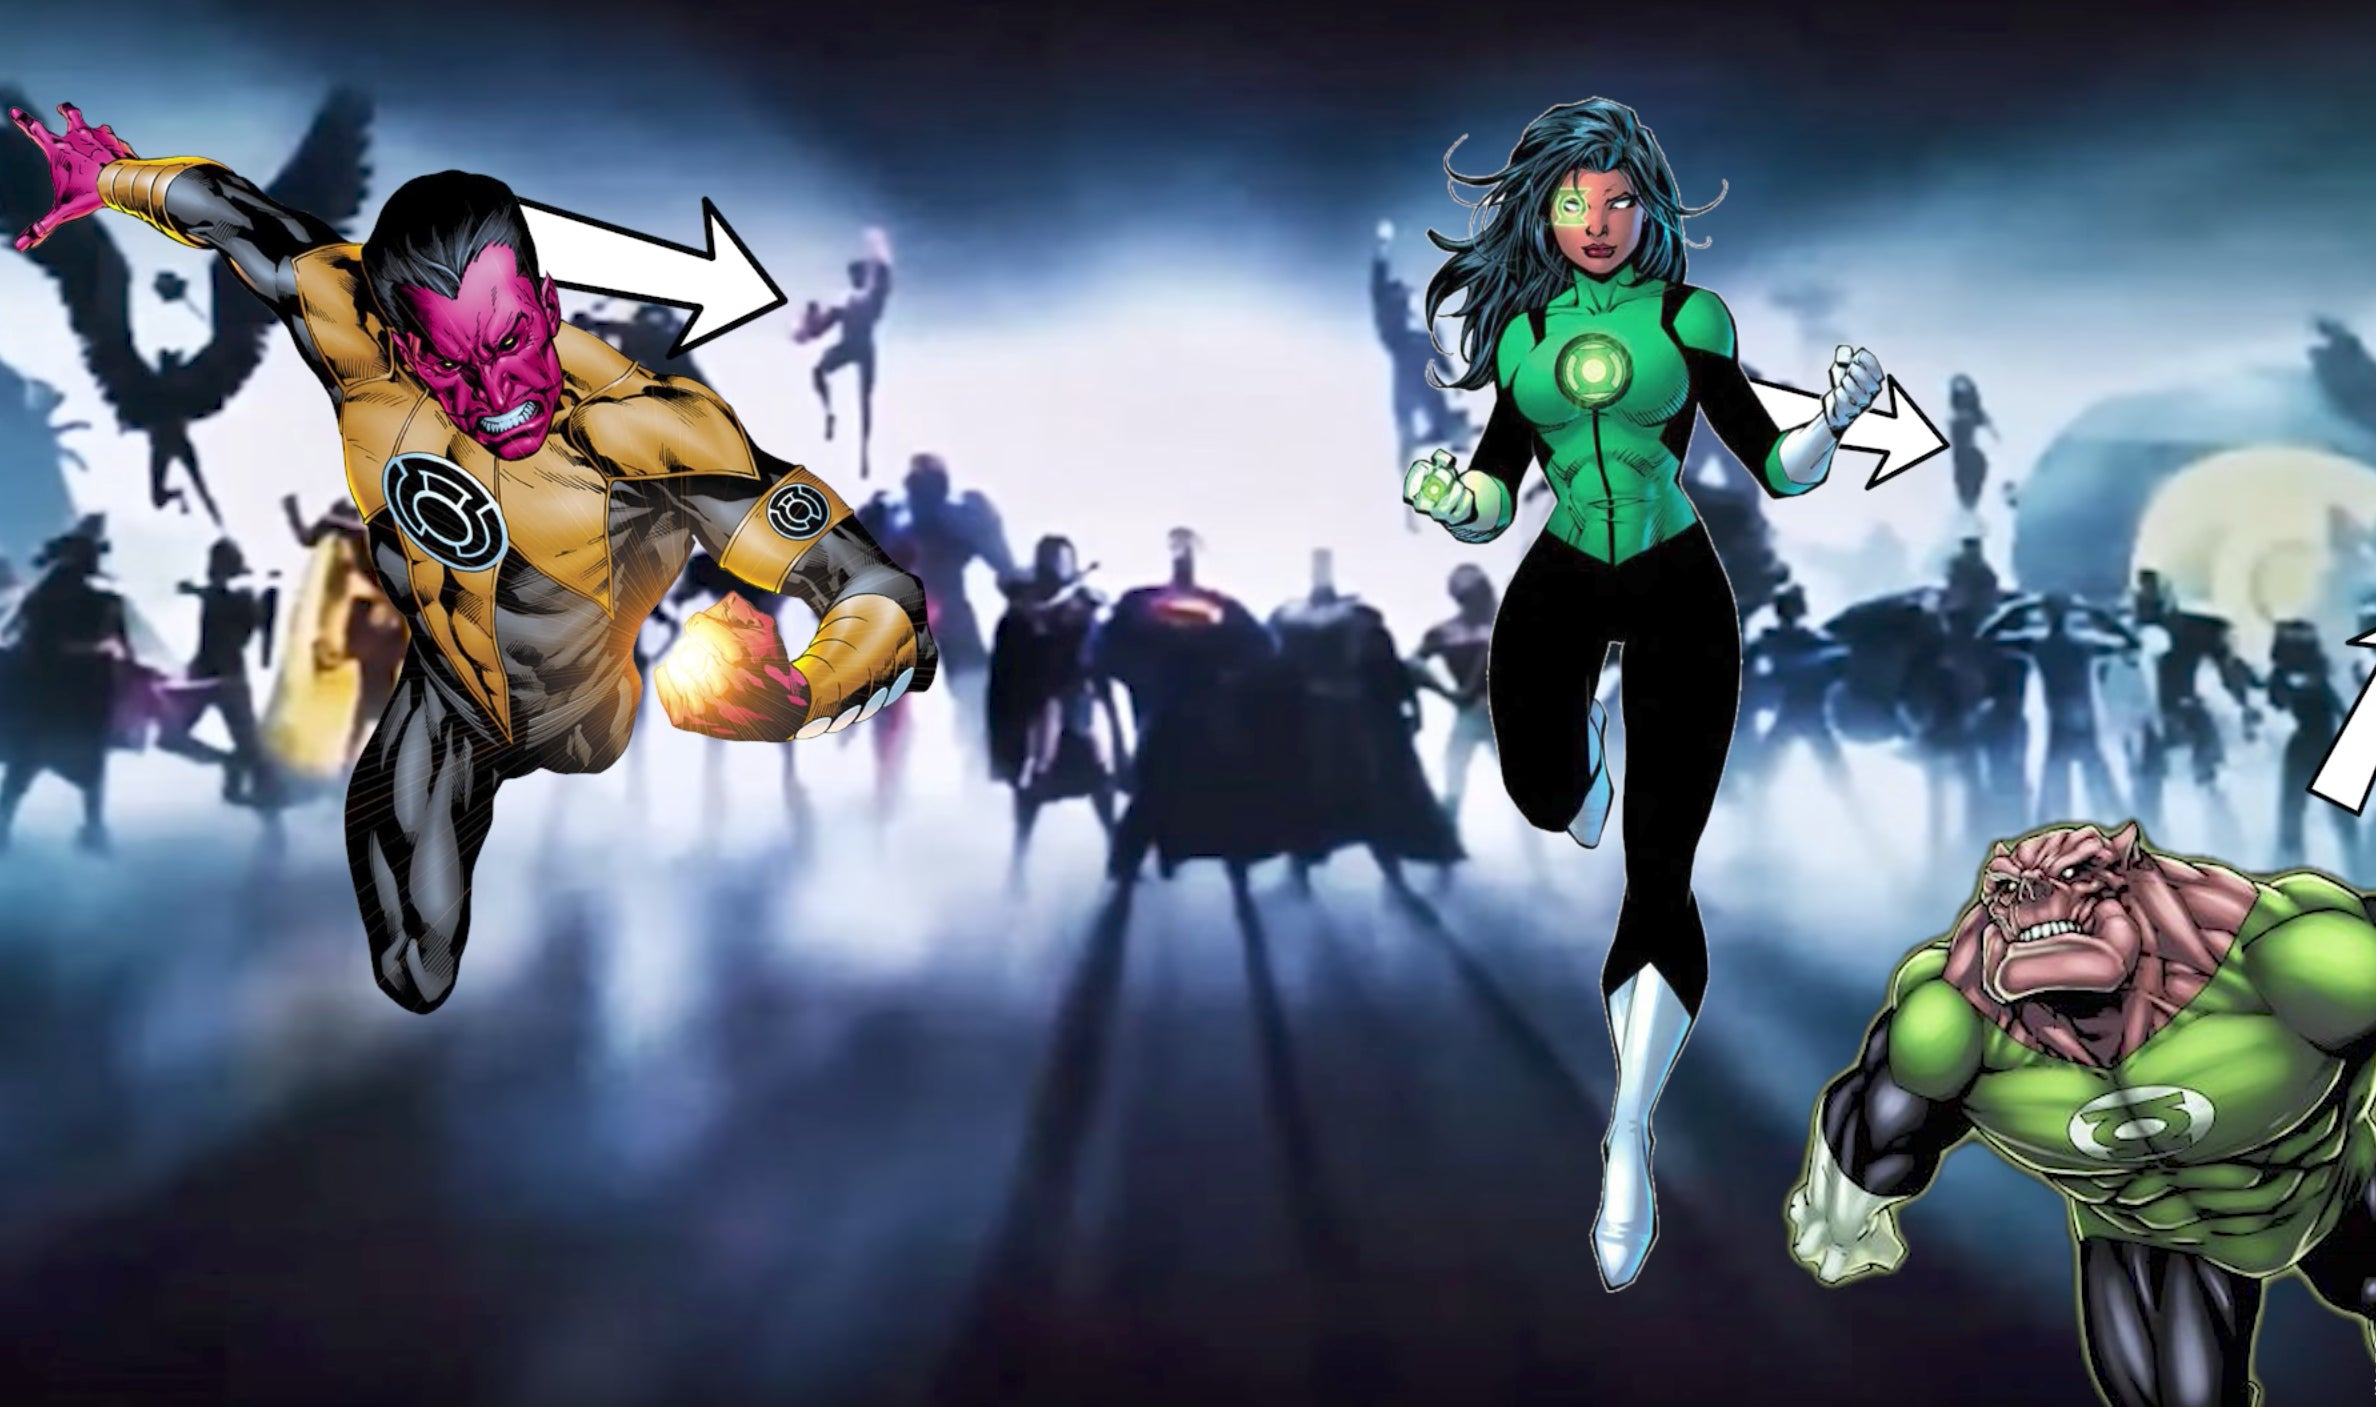 DC Movie Intro - Green Lantern Corps Sinestro Mogo Kilowog